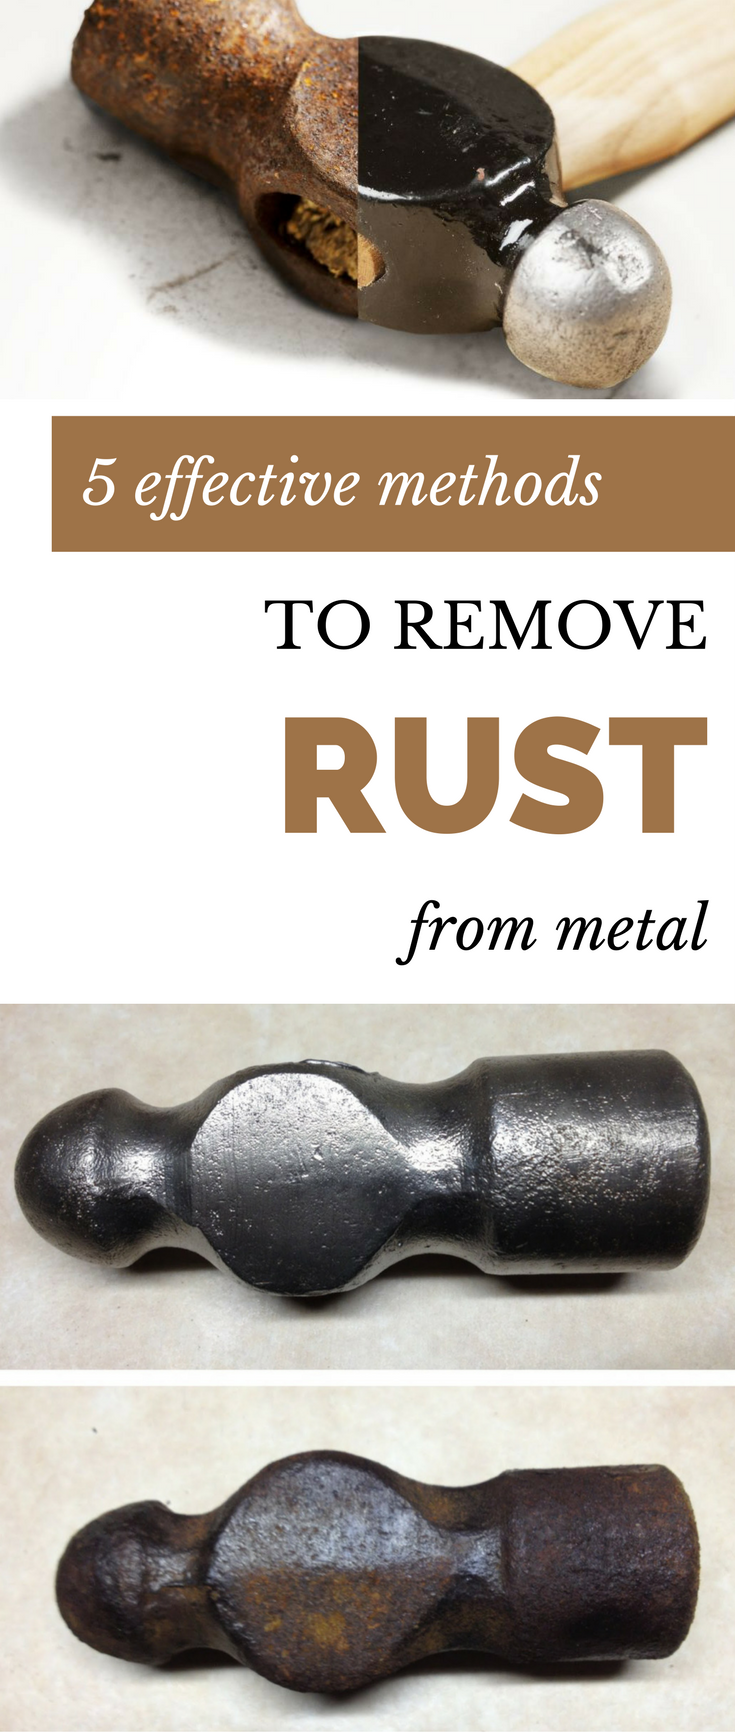 5 Effective Methods To Remove Rust From Metal Cleaningdiy Net